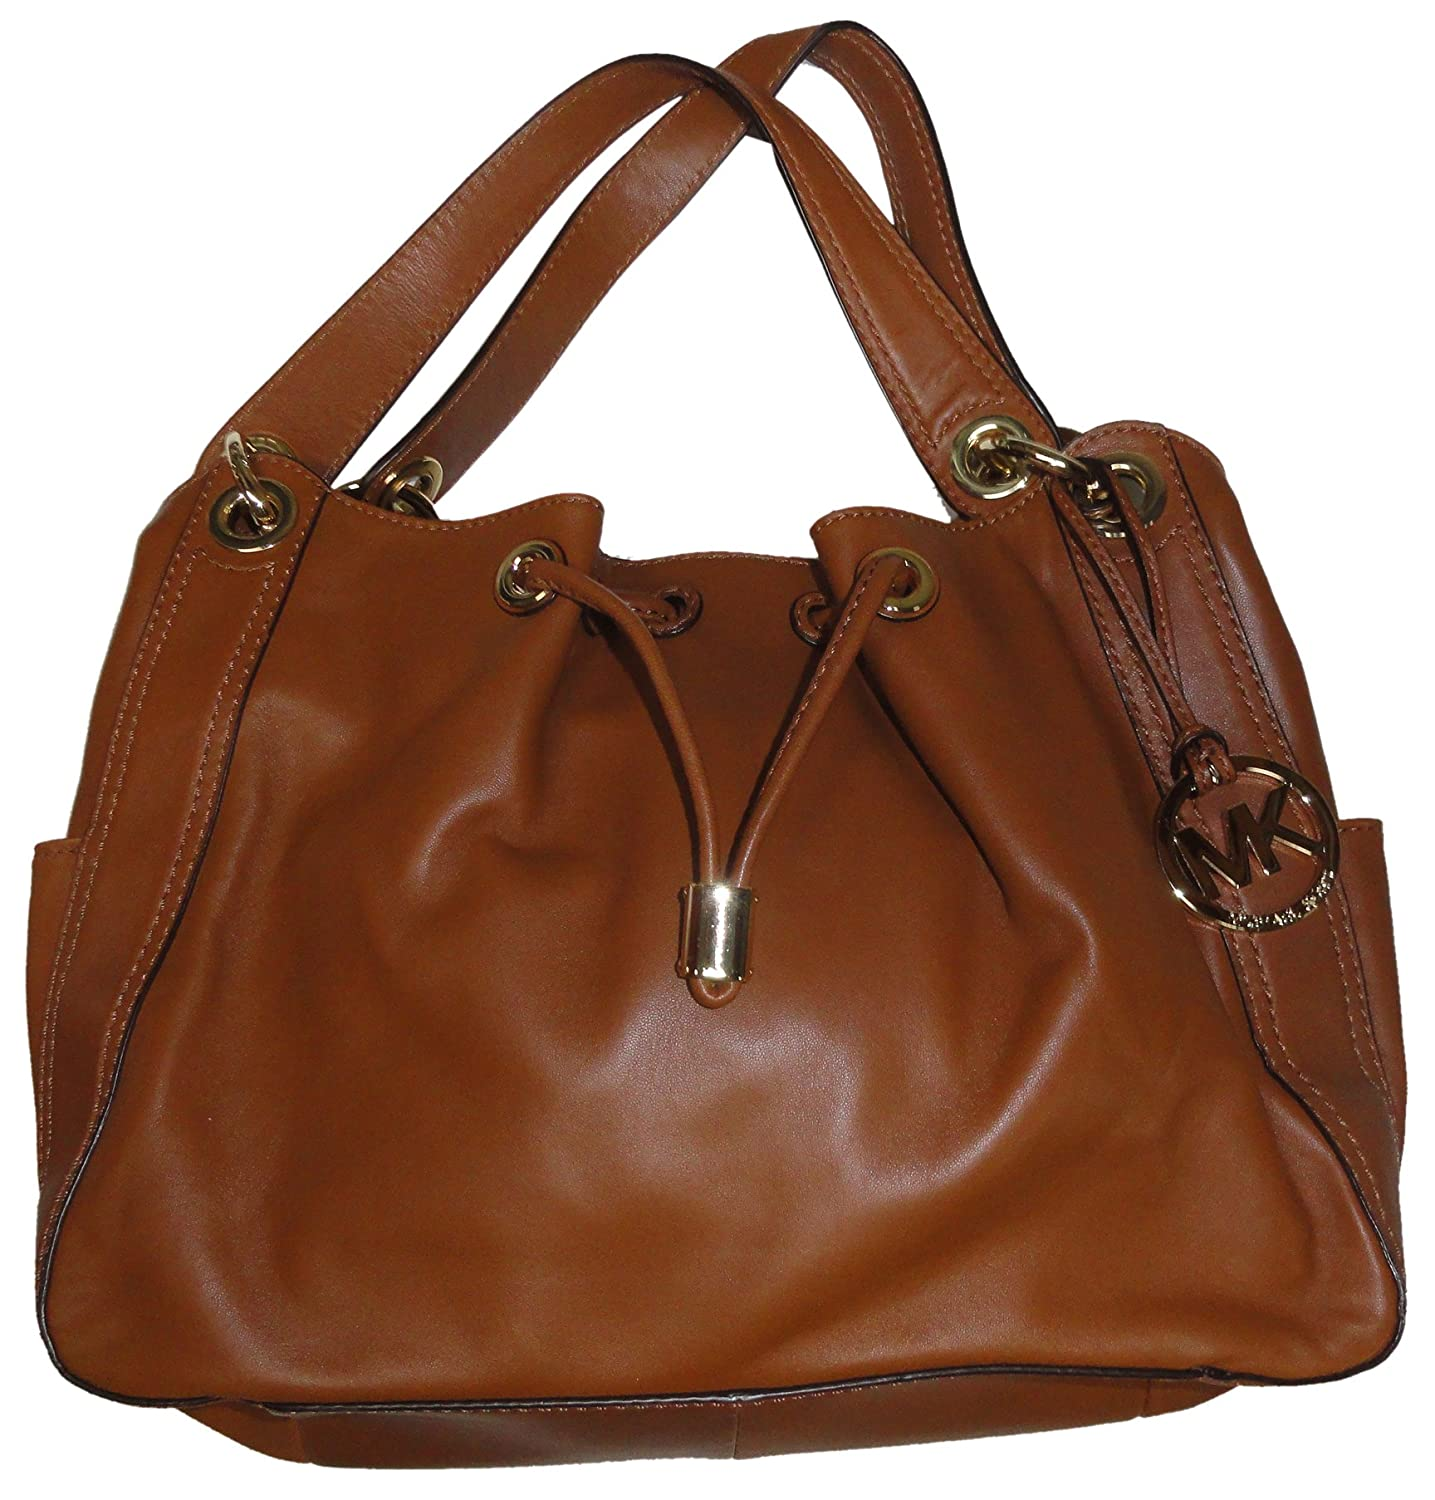 Michael Kors Big Valley Shoulder Bag 52